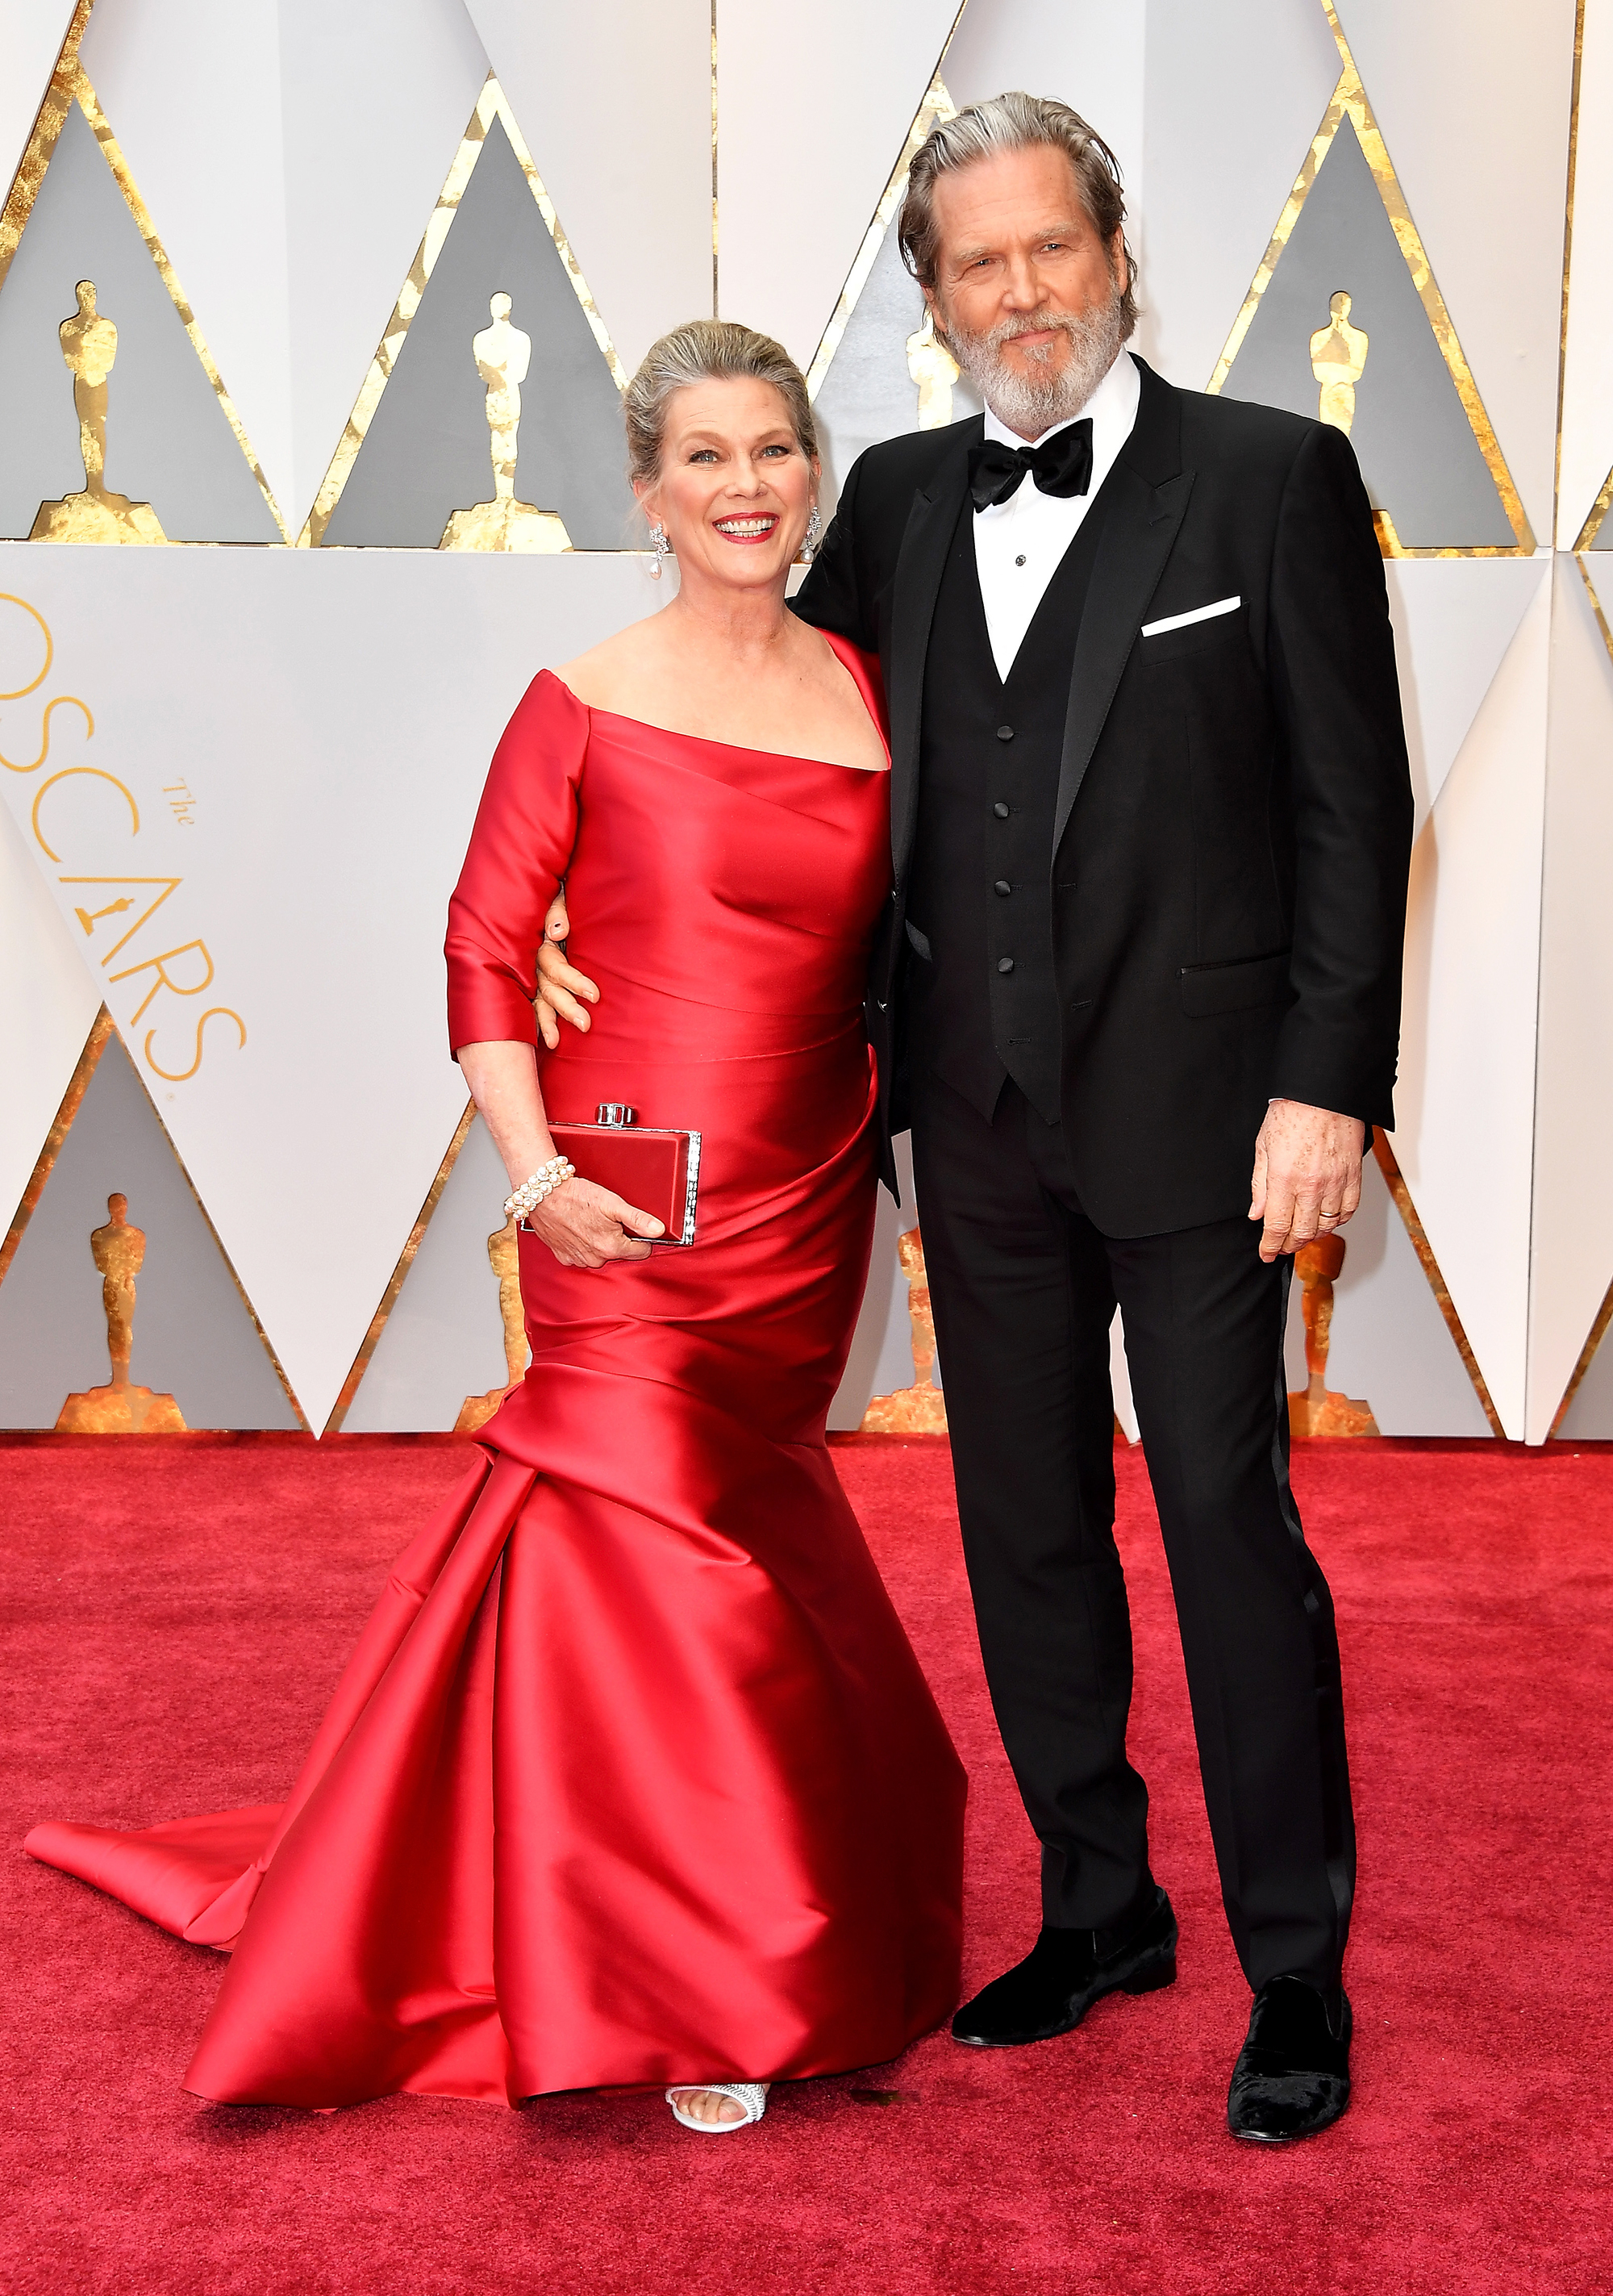 Susan Geston and Jeff Bridges on the red carpet for the 89th Oscars, on Feb. 26, 2017 in Hollywood, Calif.